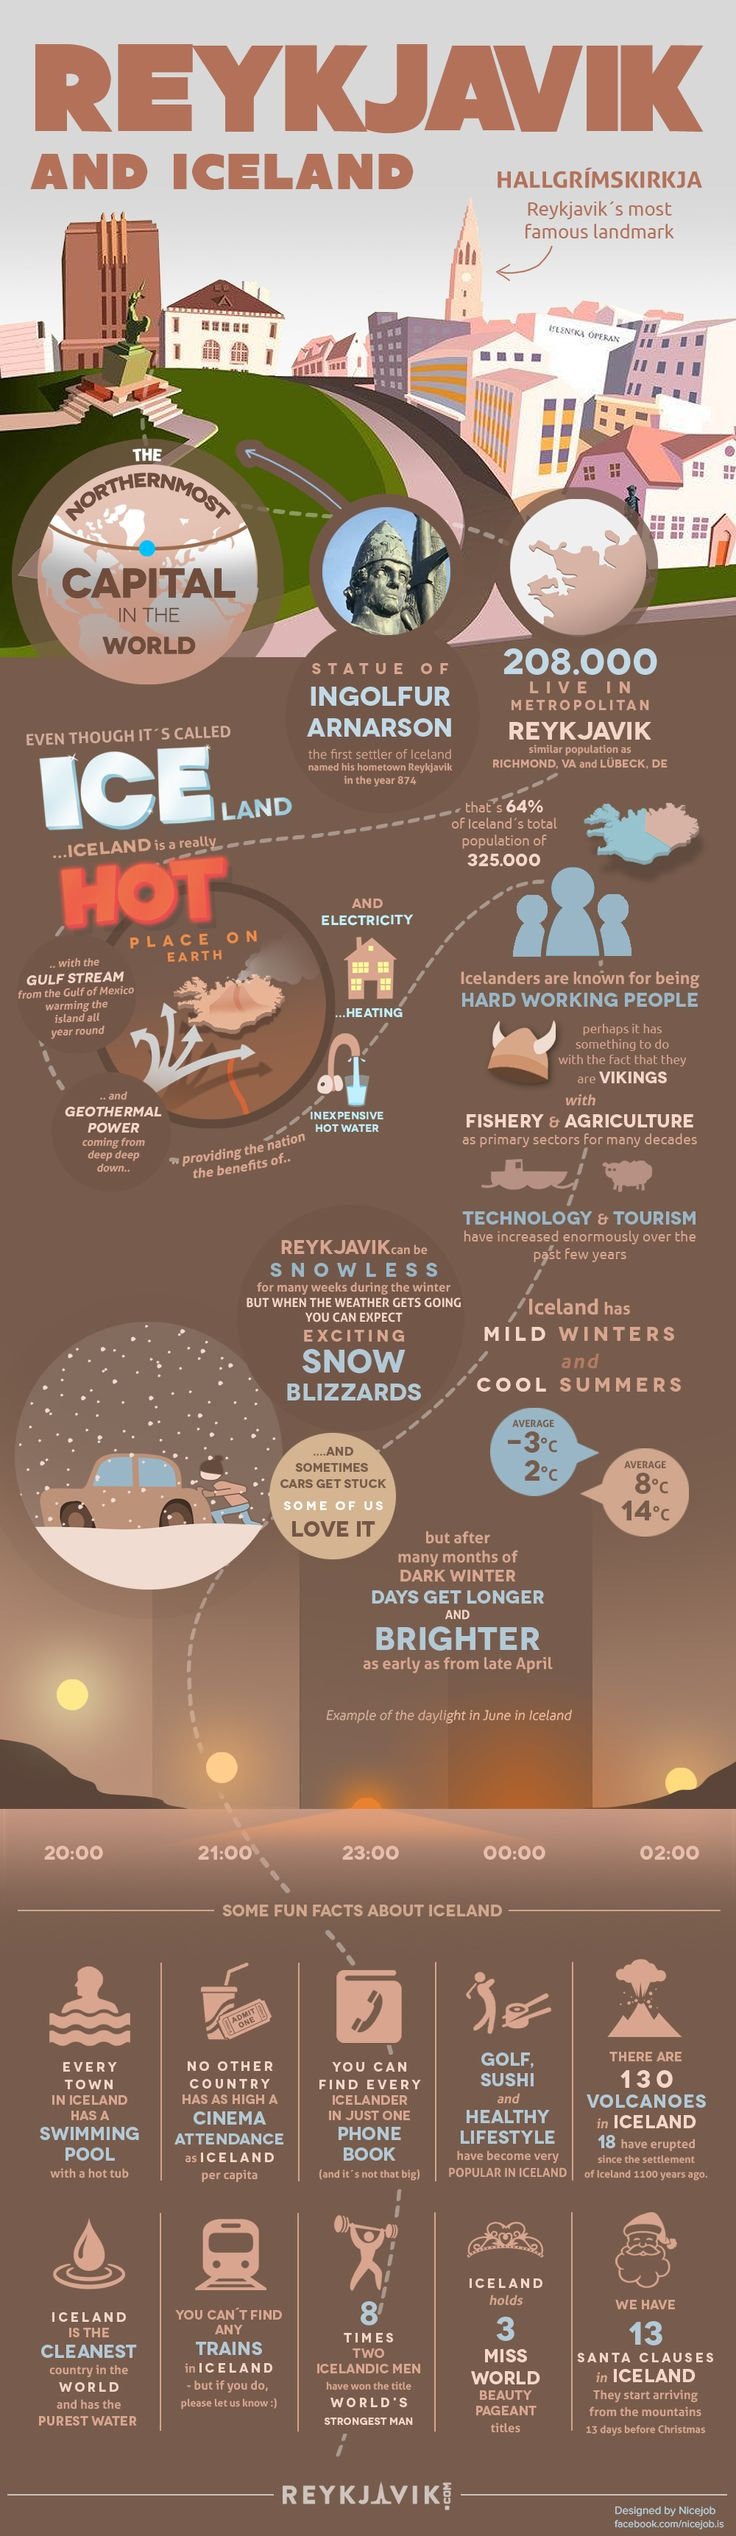 I've been there and I want to go back! It's so amazing! Brilliant Infograph on Reykjavik & Iceland